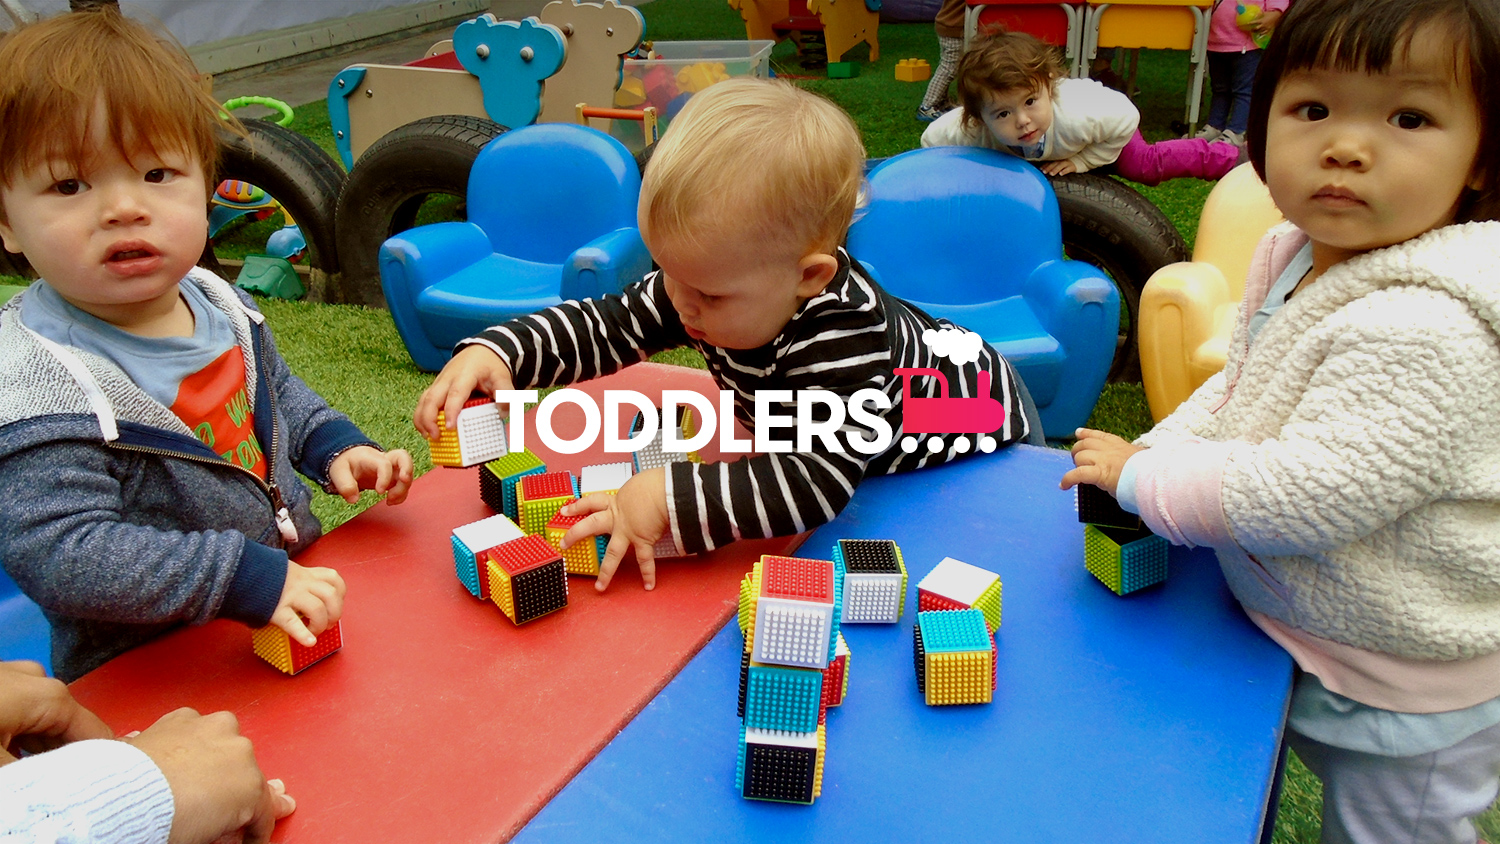 LesEnfants_Toddlers_09.jpg